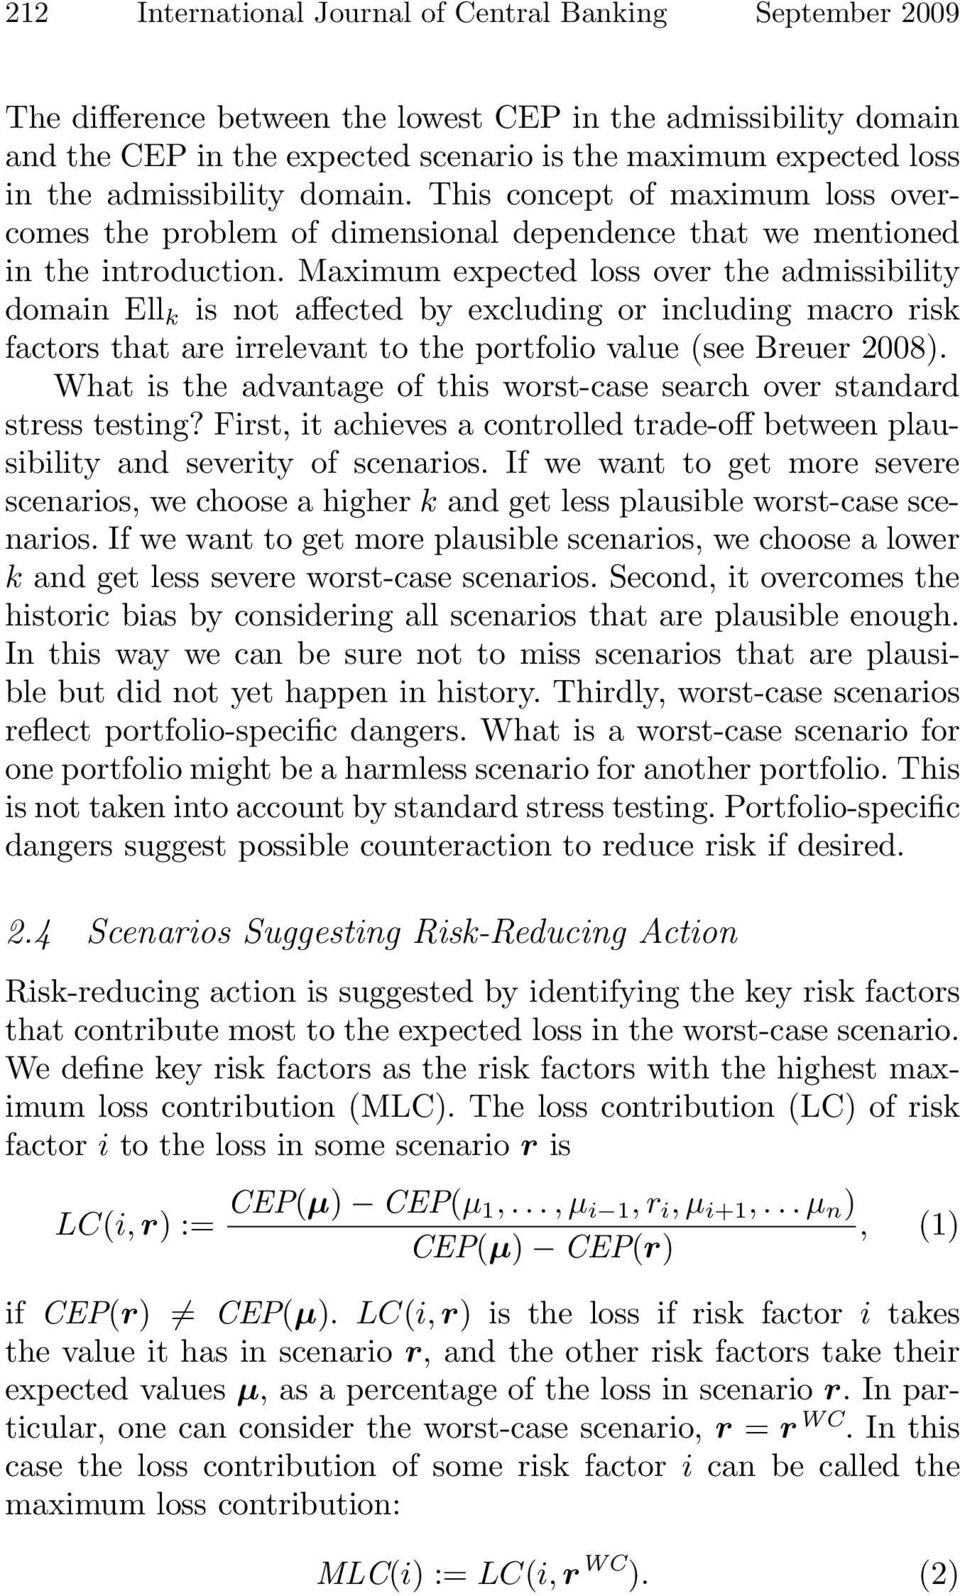 Maximum expected loss over the admissibility domain Ell k is not affected by excluding or including macro risk factors that are irrelevant to the portfolio value (see Breuer 2008).